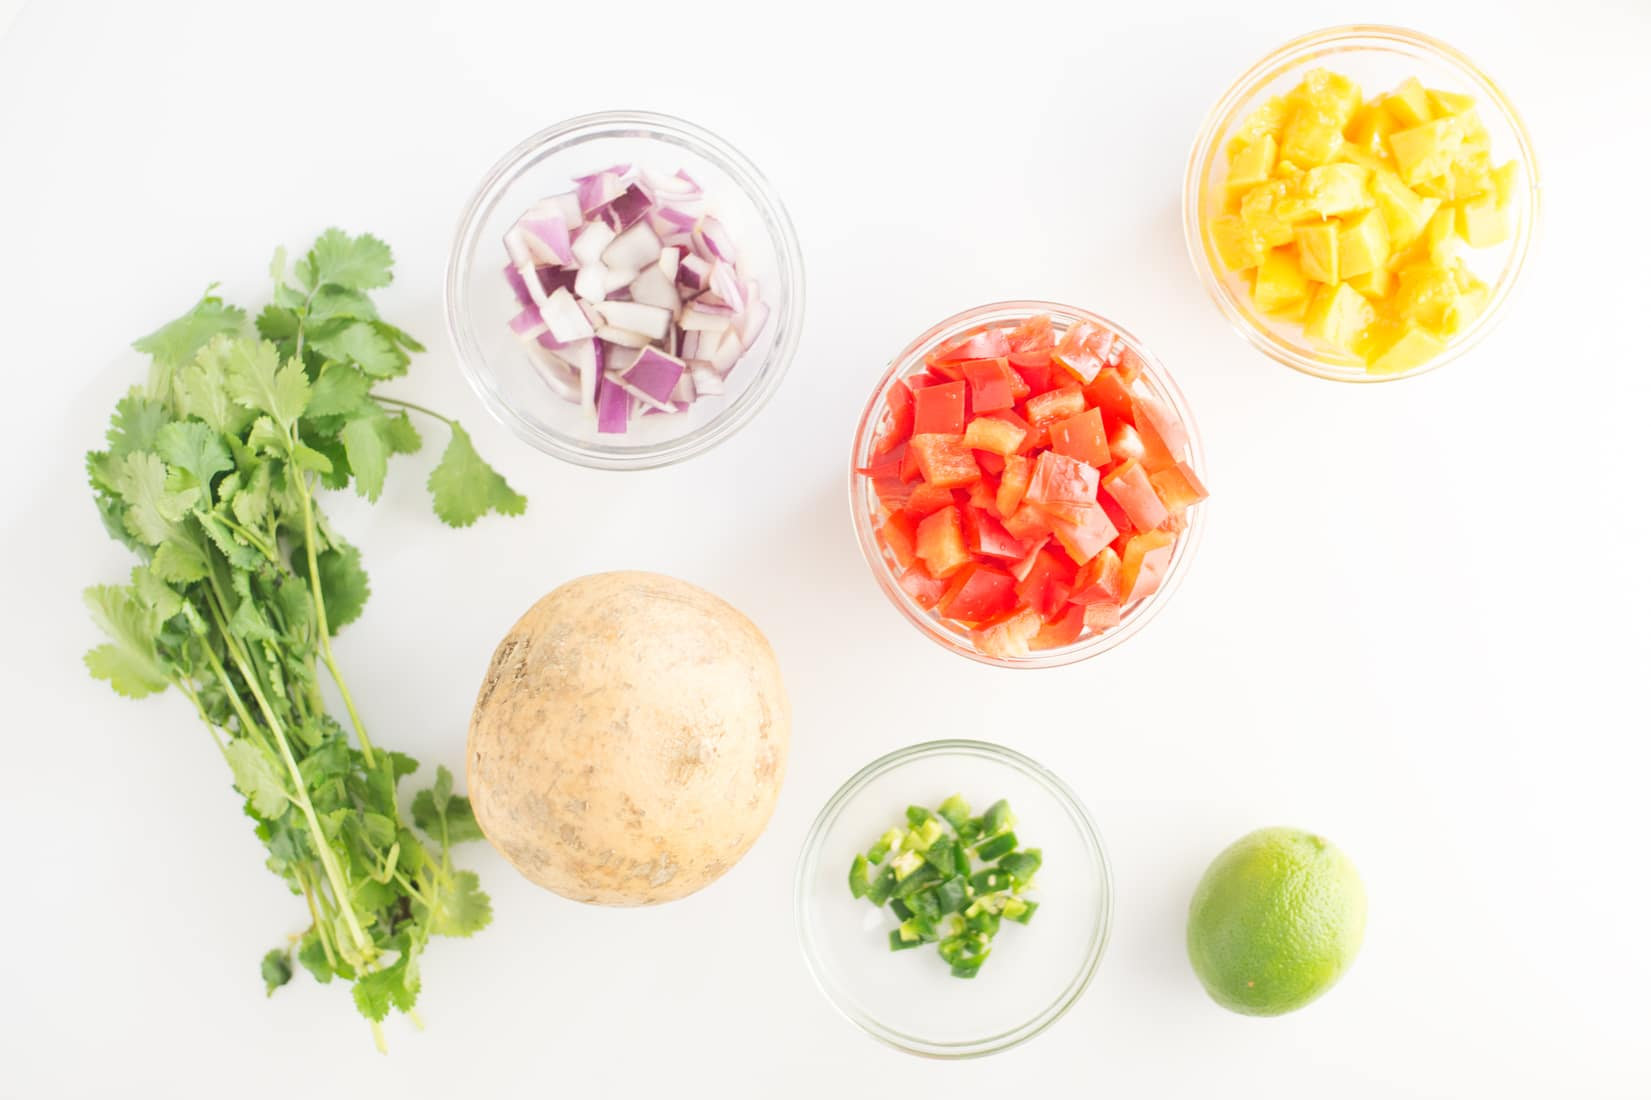 bunch of cilantro, diced red onion, diced red bell pepper, jicama, minced jalapeno, diced mango, and lime on white background.